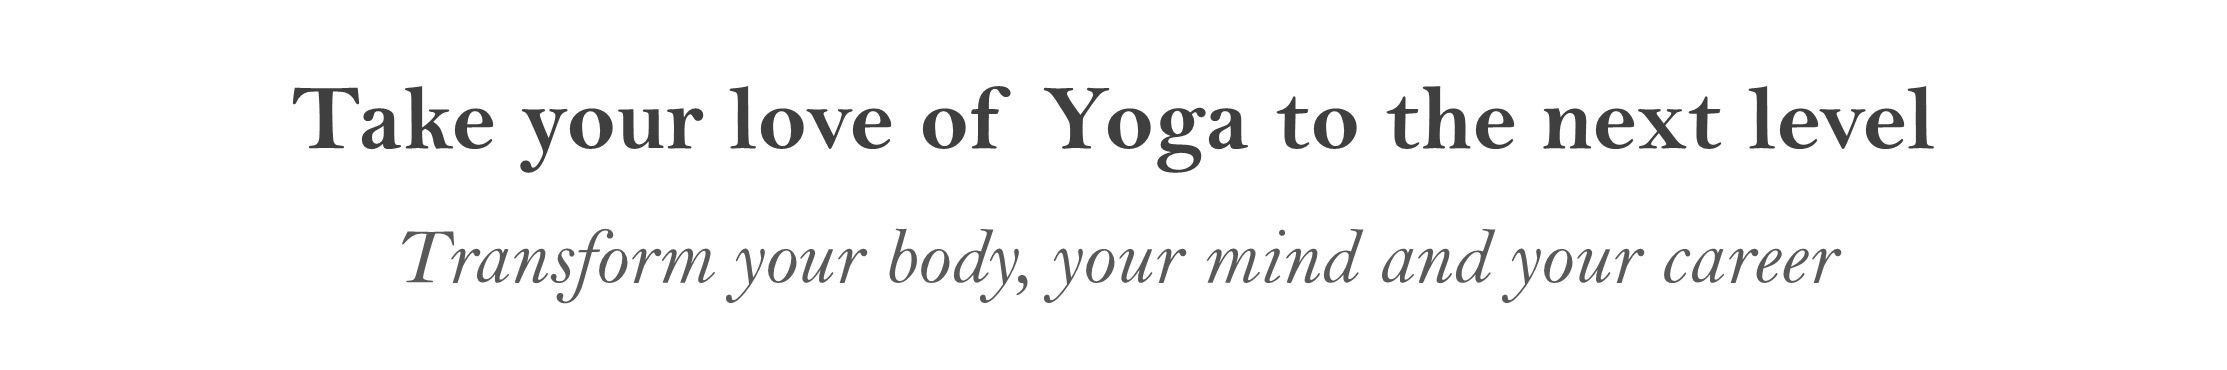 Yog Temple, Yoga School and Healing Centre, Goa India Austria, Yoga Teacher Training, Shamanism Course